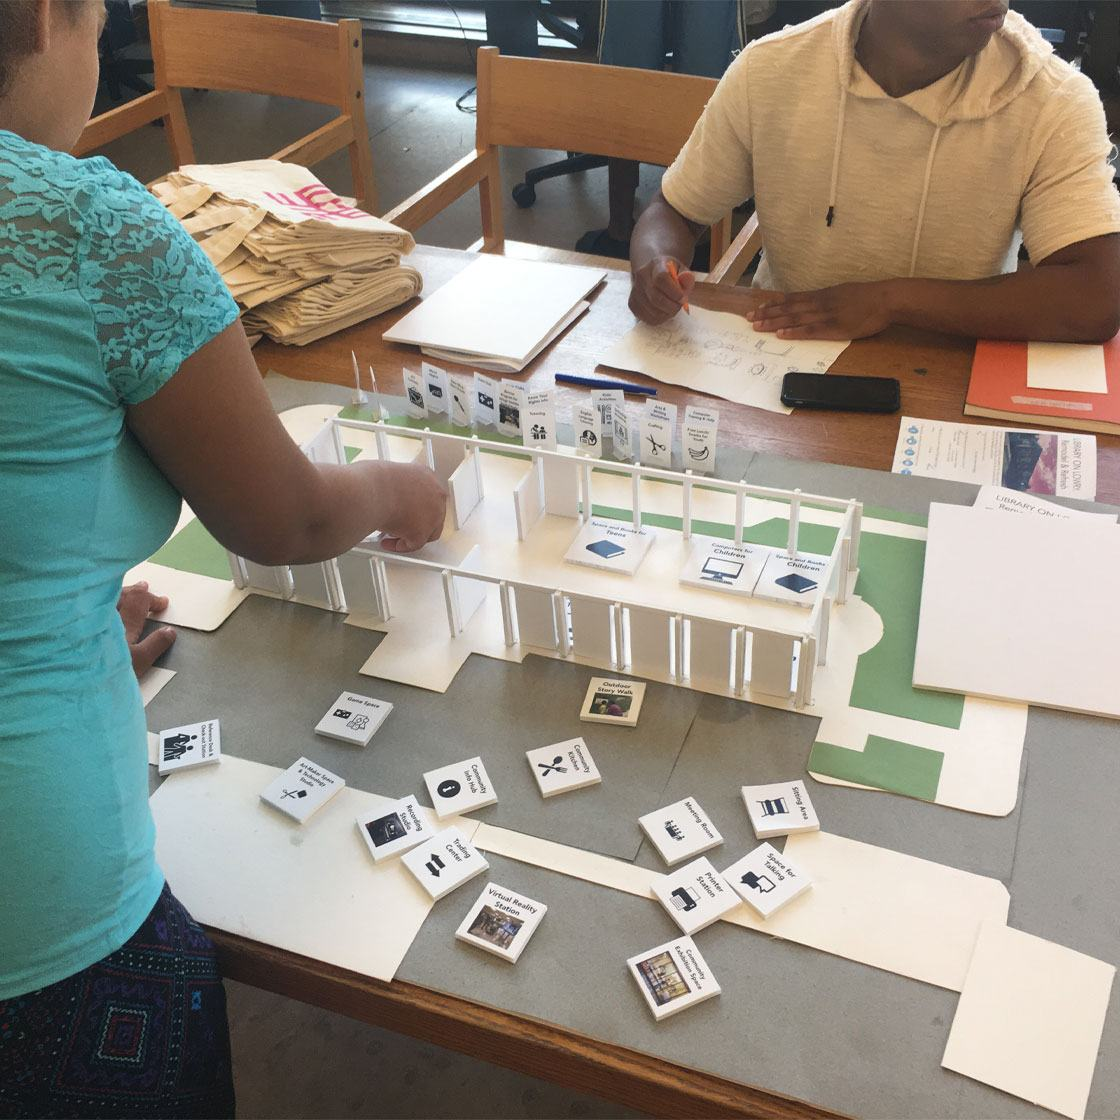 Tactical Lab leads an engagement for the redevelopment of North Regional Library through model mockups with visitors